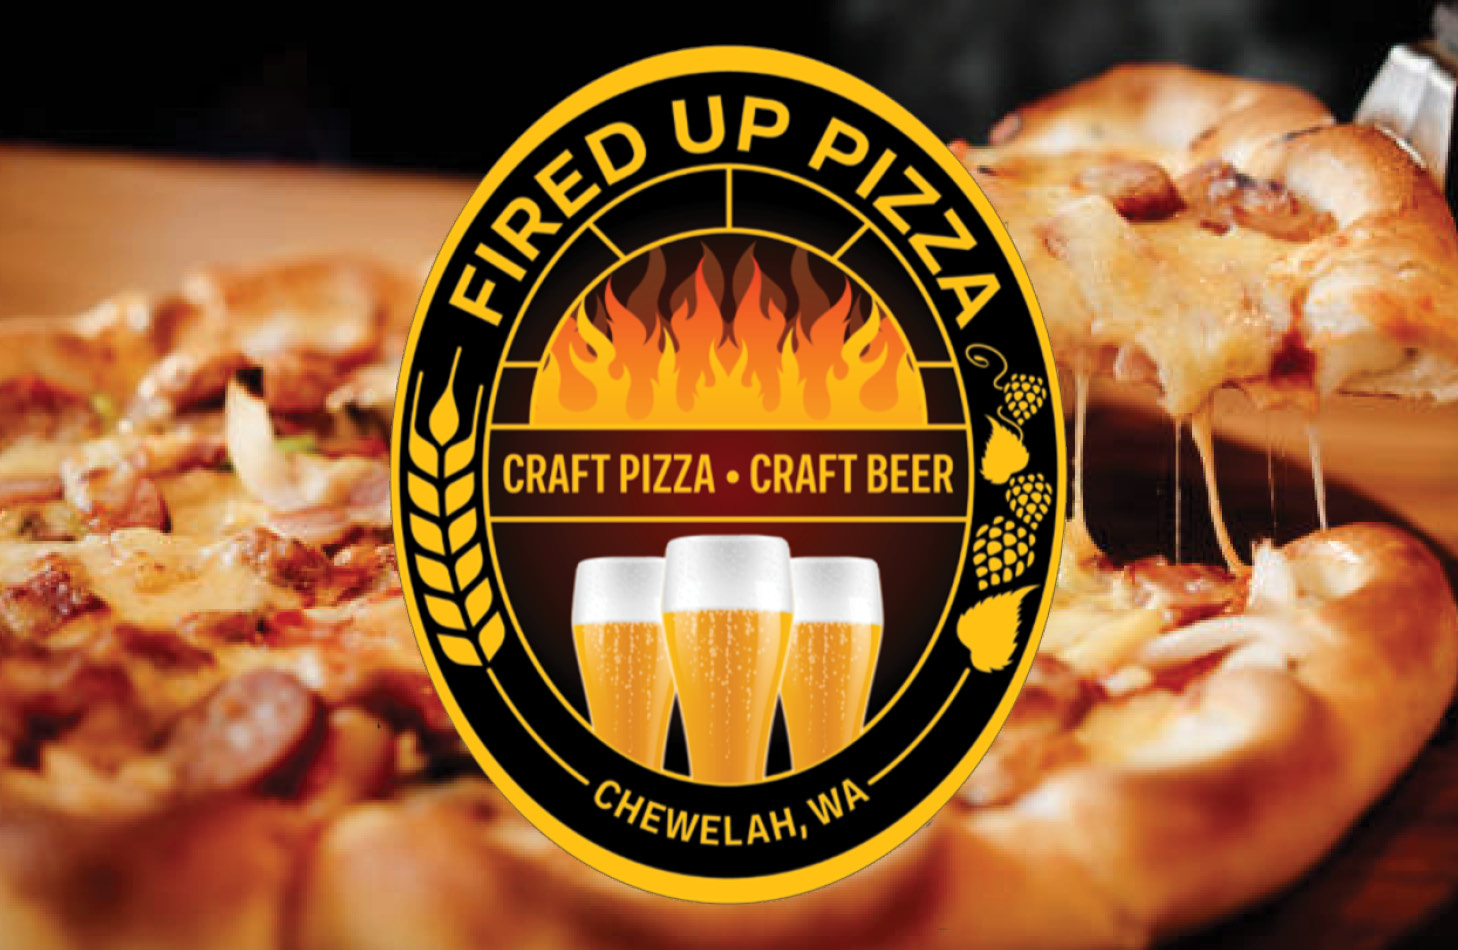 Fired up pizza logo